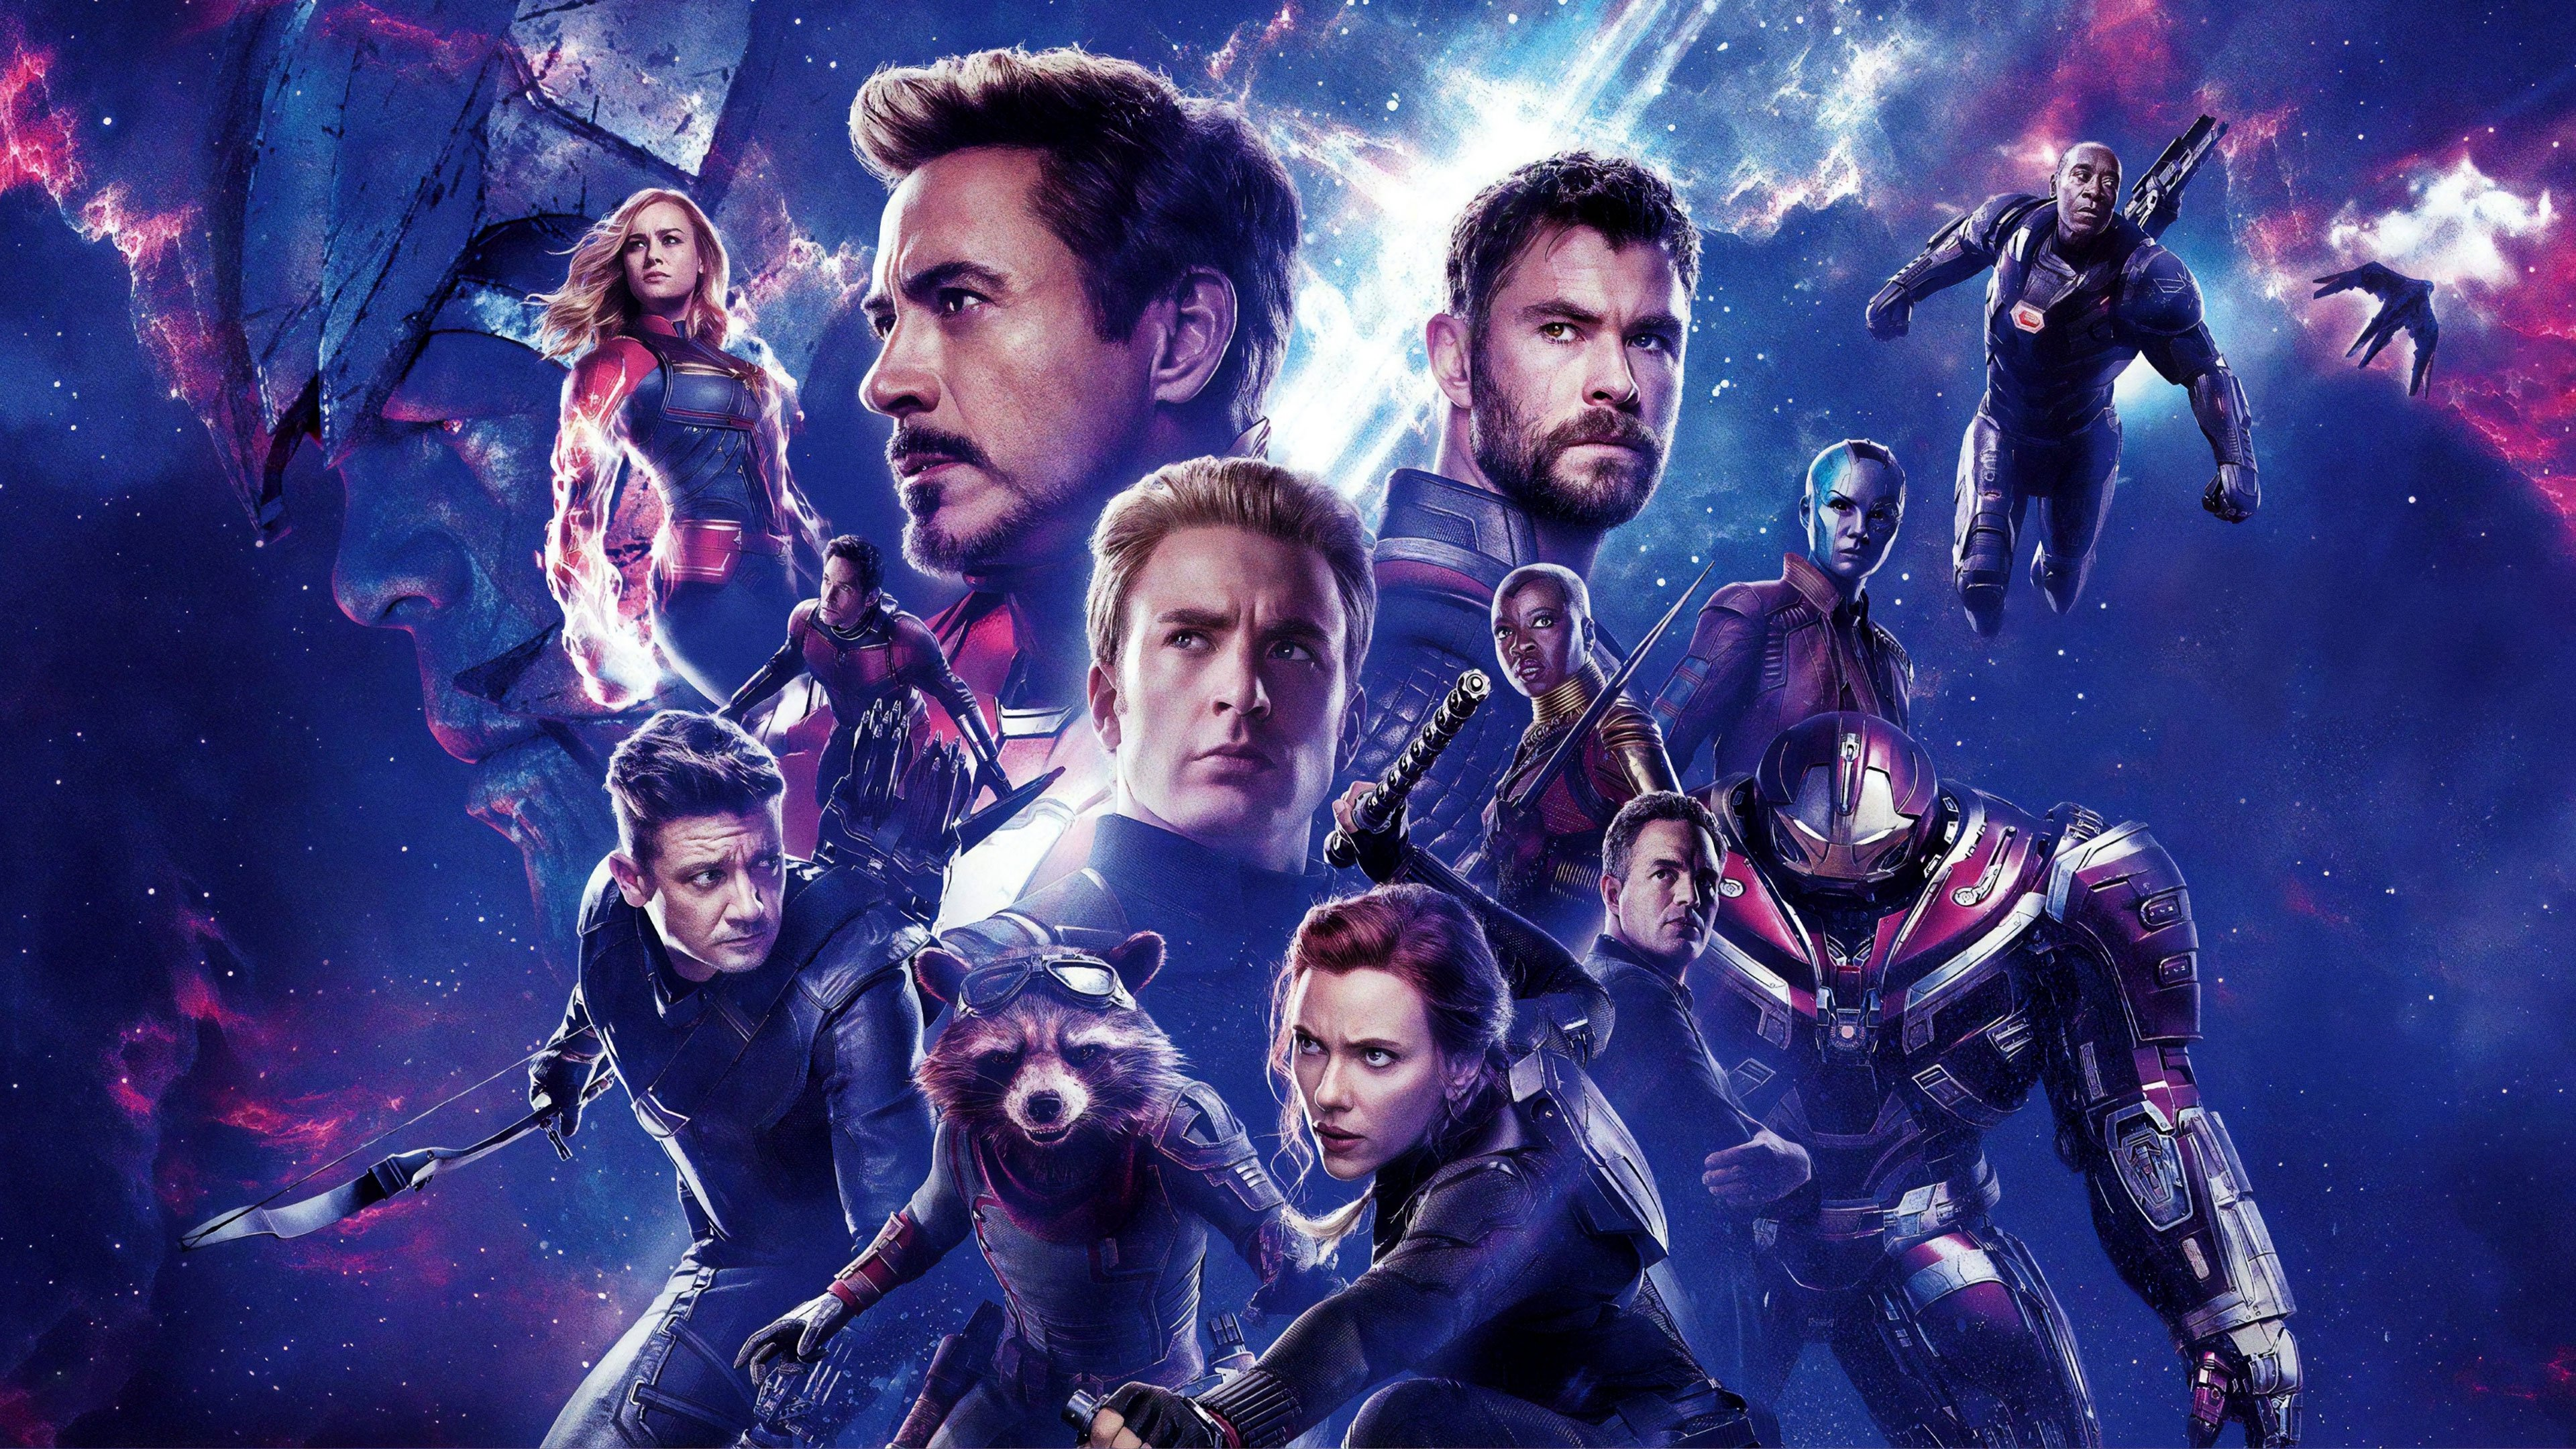 Avengers Endgame Check Out An Ultra Hd Textless Version Of The